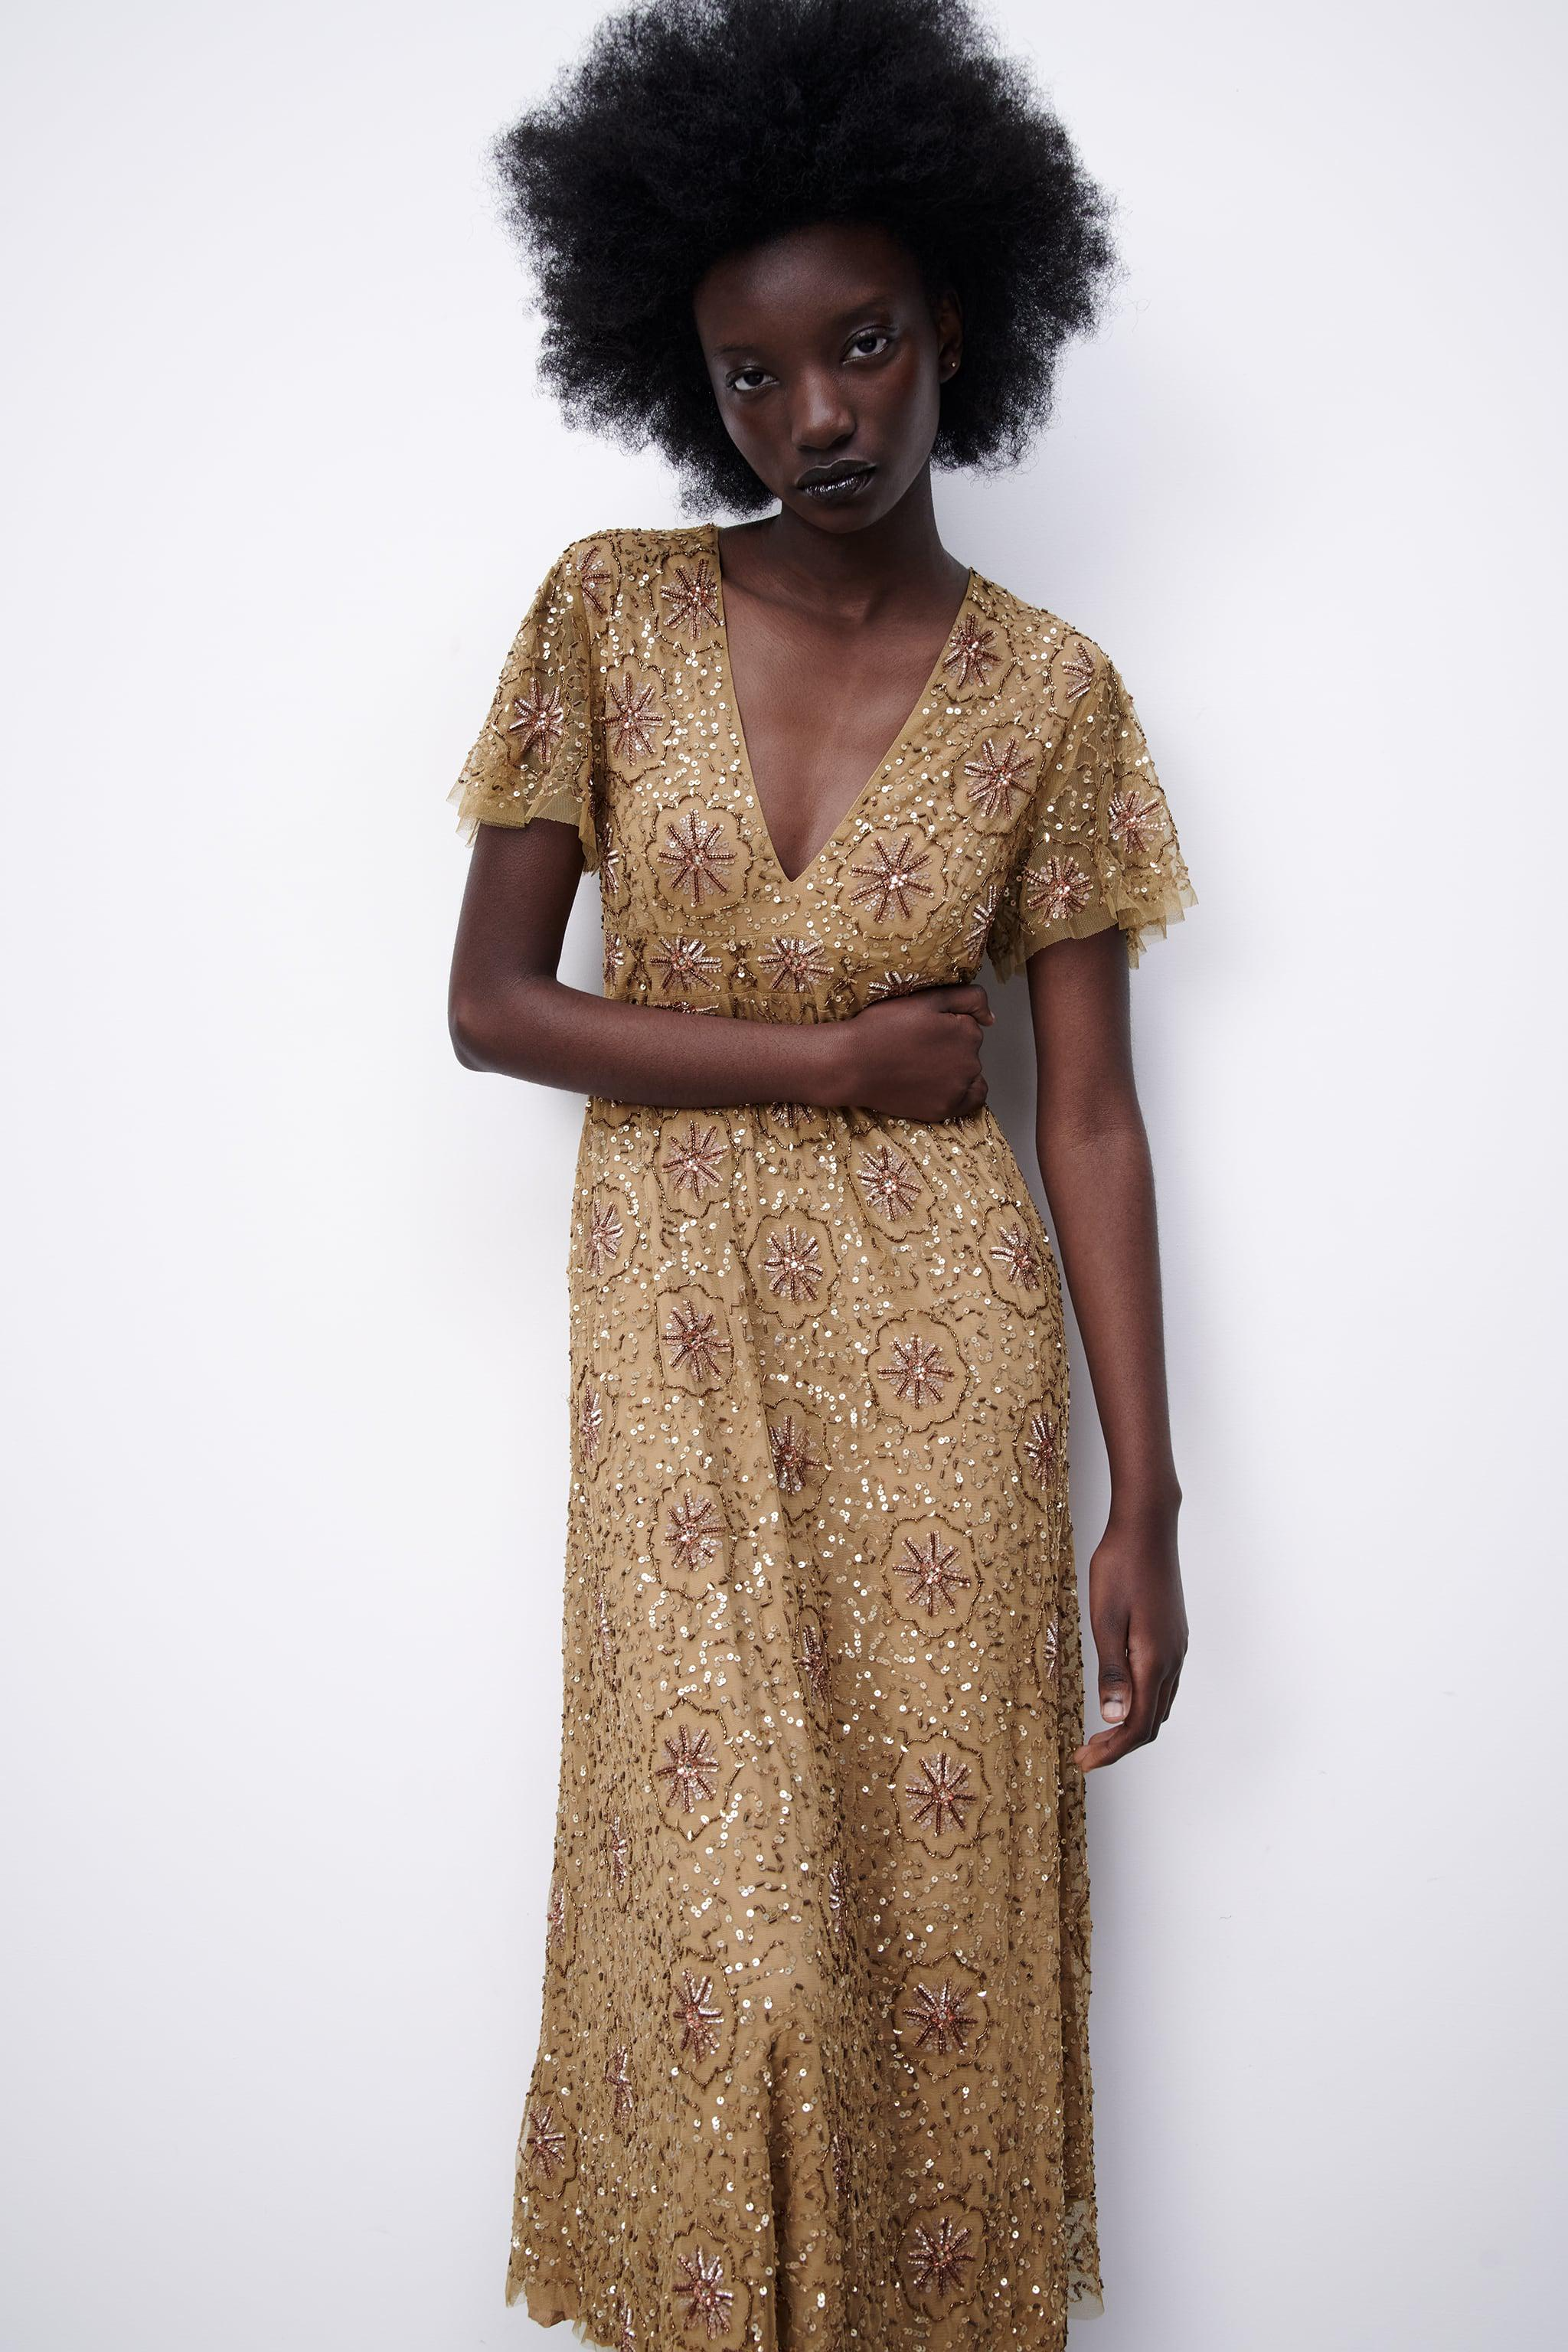 BEADED SPECIAL EDITION KNIT DRESS 2